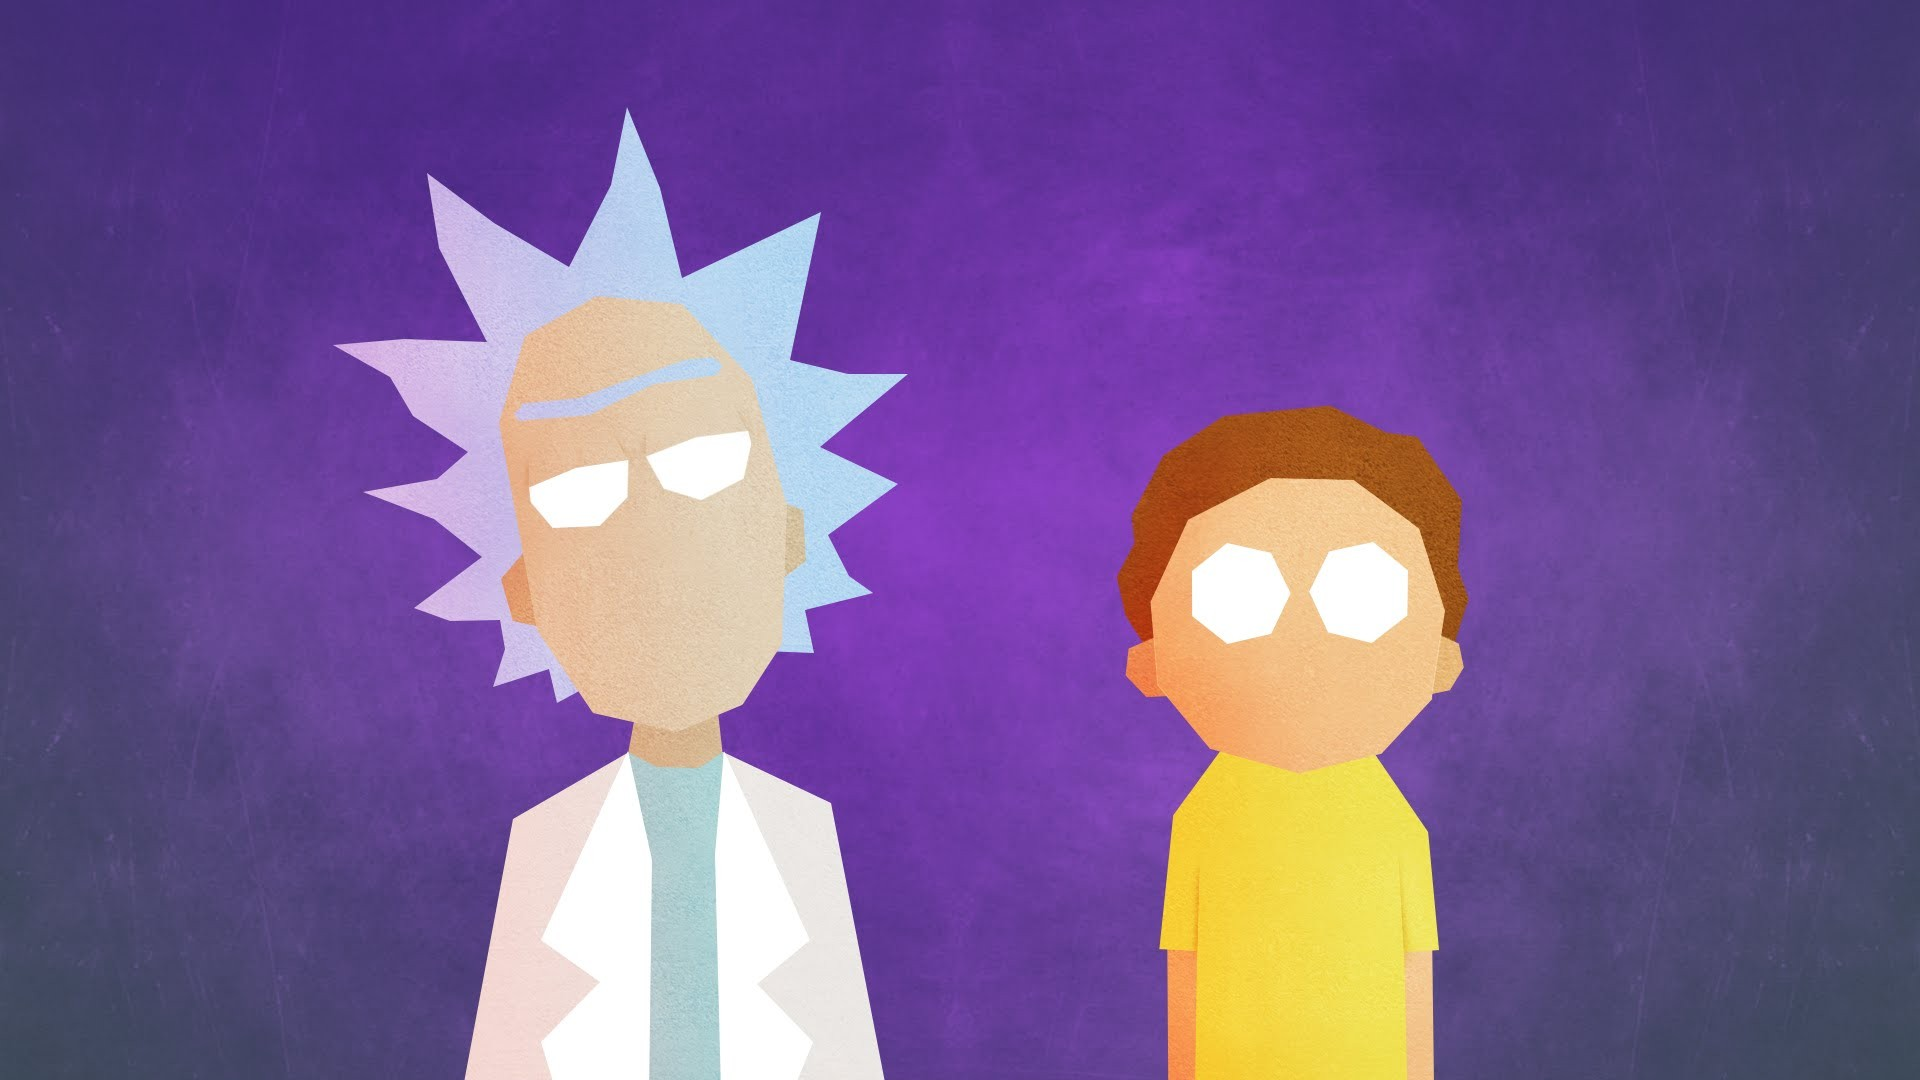 Rick and Morty wallpaper 1080p Download stunning 1920x1080